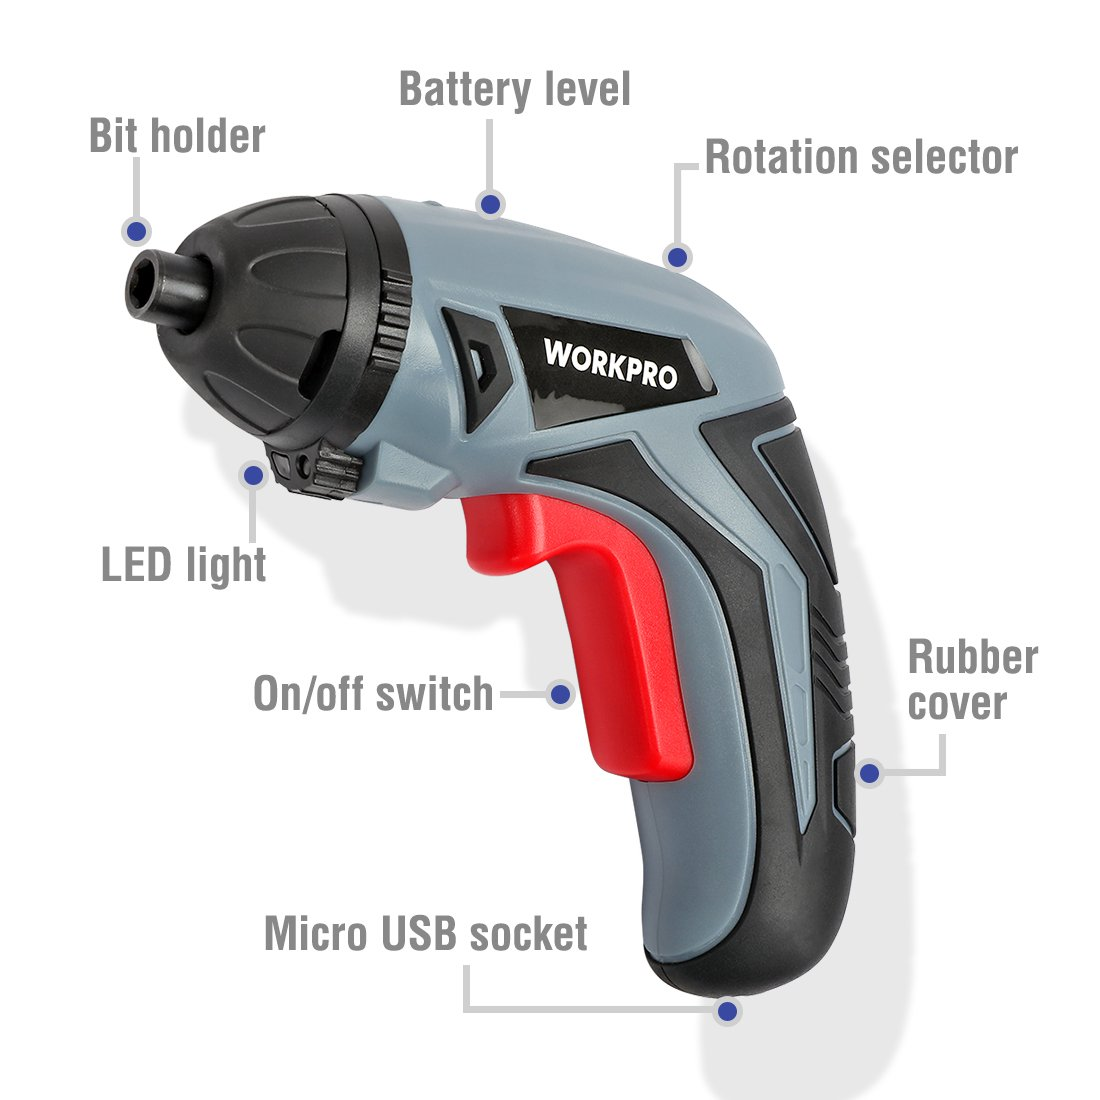 WORKPRO Cordless Rechargeable Screwdriver, Powered by 3.6V Li-ion Battery, USB Charging Cable and 10-piece Bits Included by WORKPRO (Image #2)